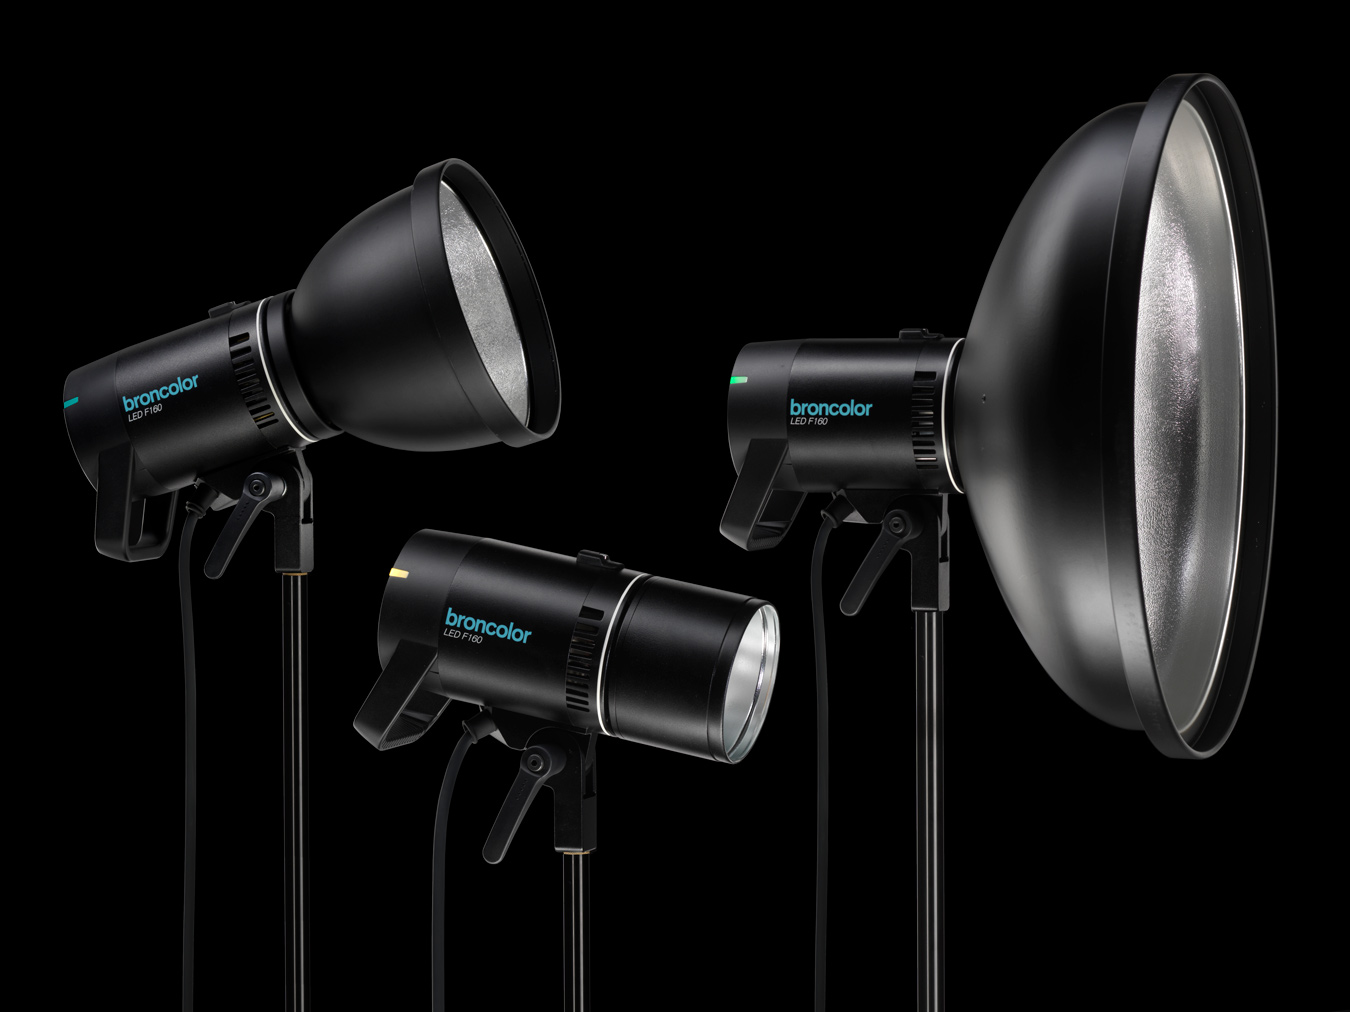 Broncolor F160 collection of photo studio lighting equipment